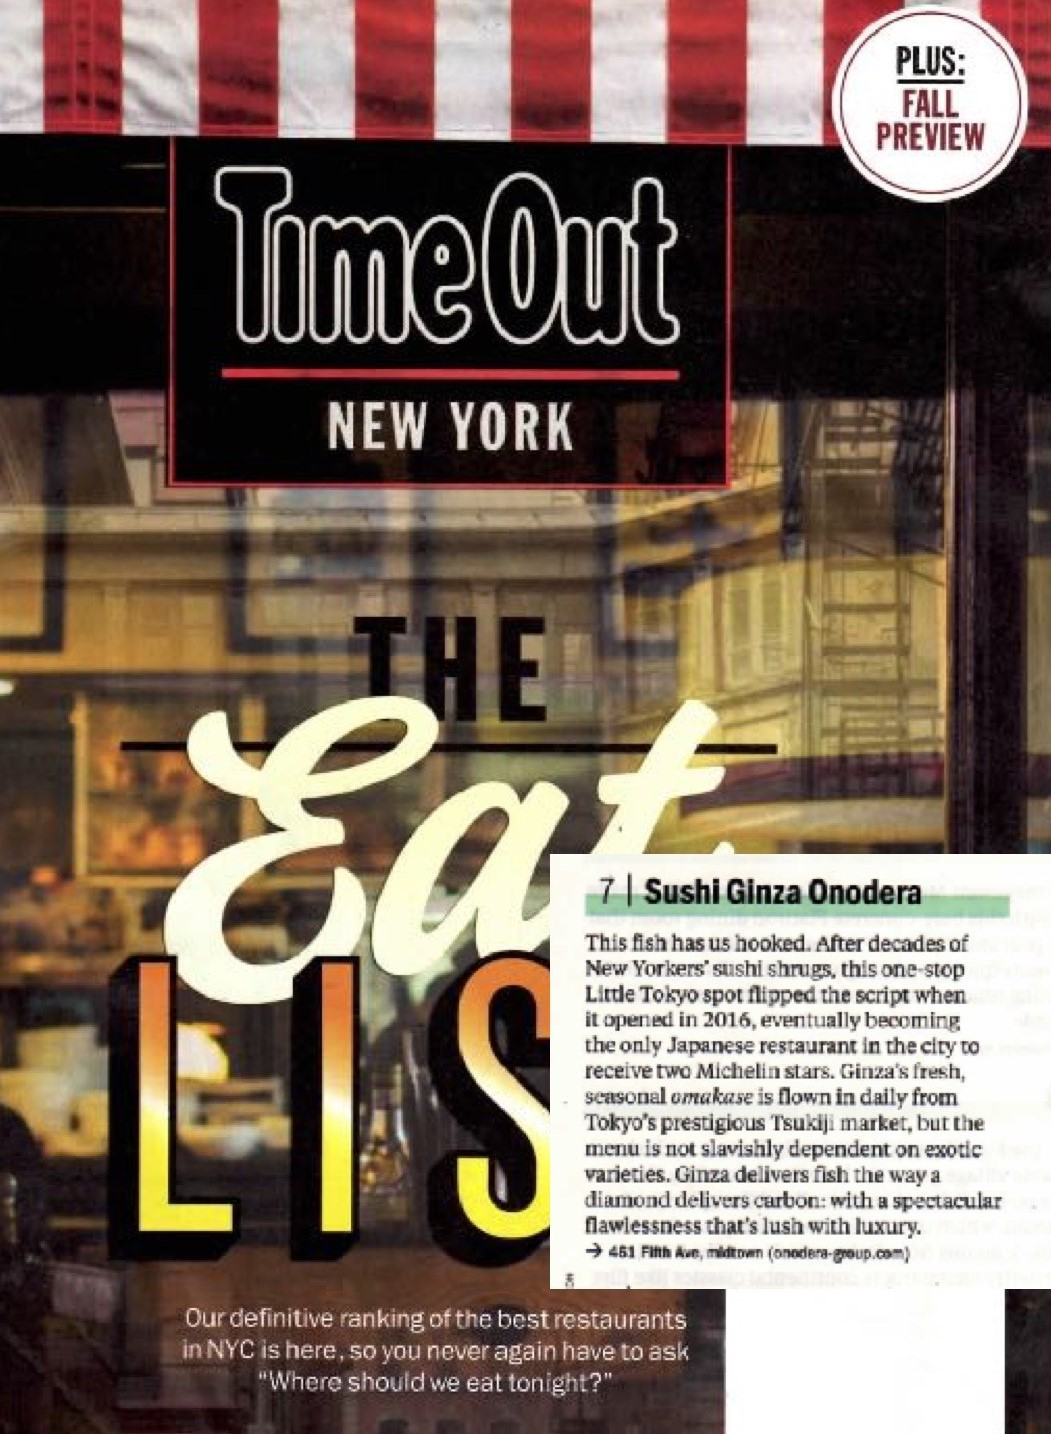 Time Out New York, a short review